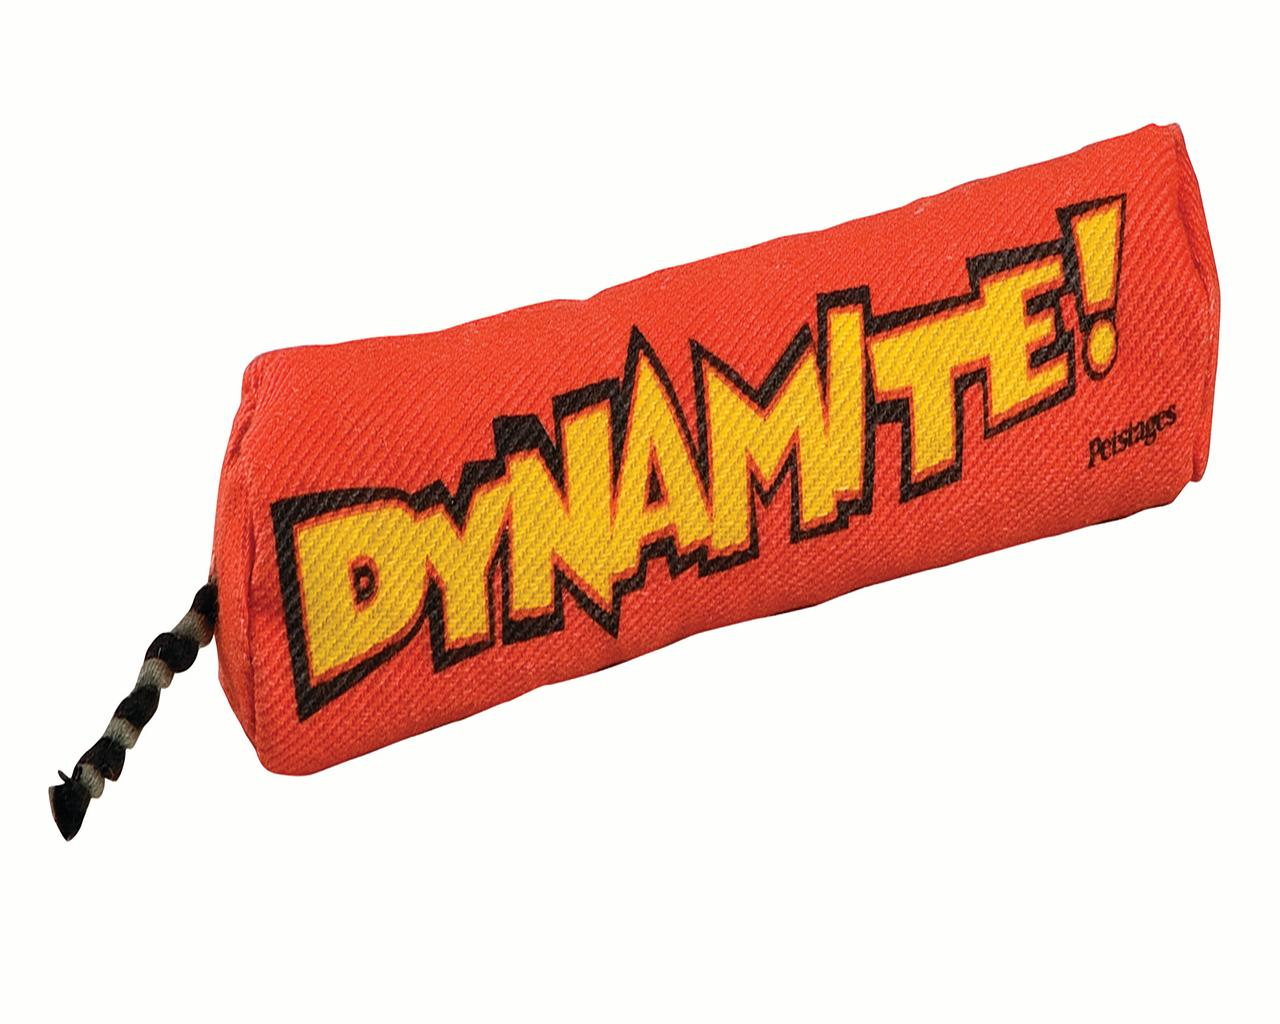 Petstages Dynamite Catnip Cat Toy by Outward Hound